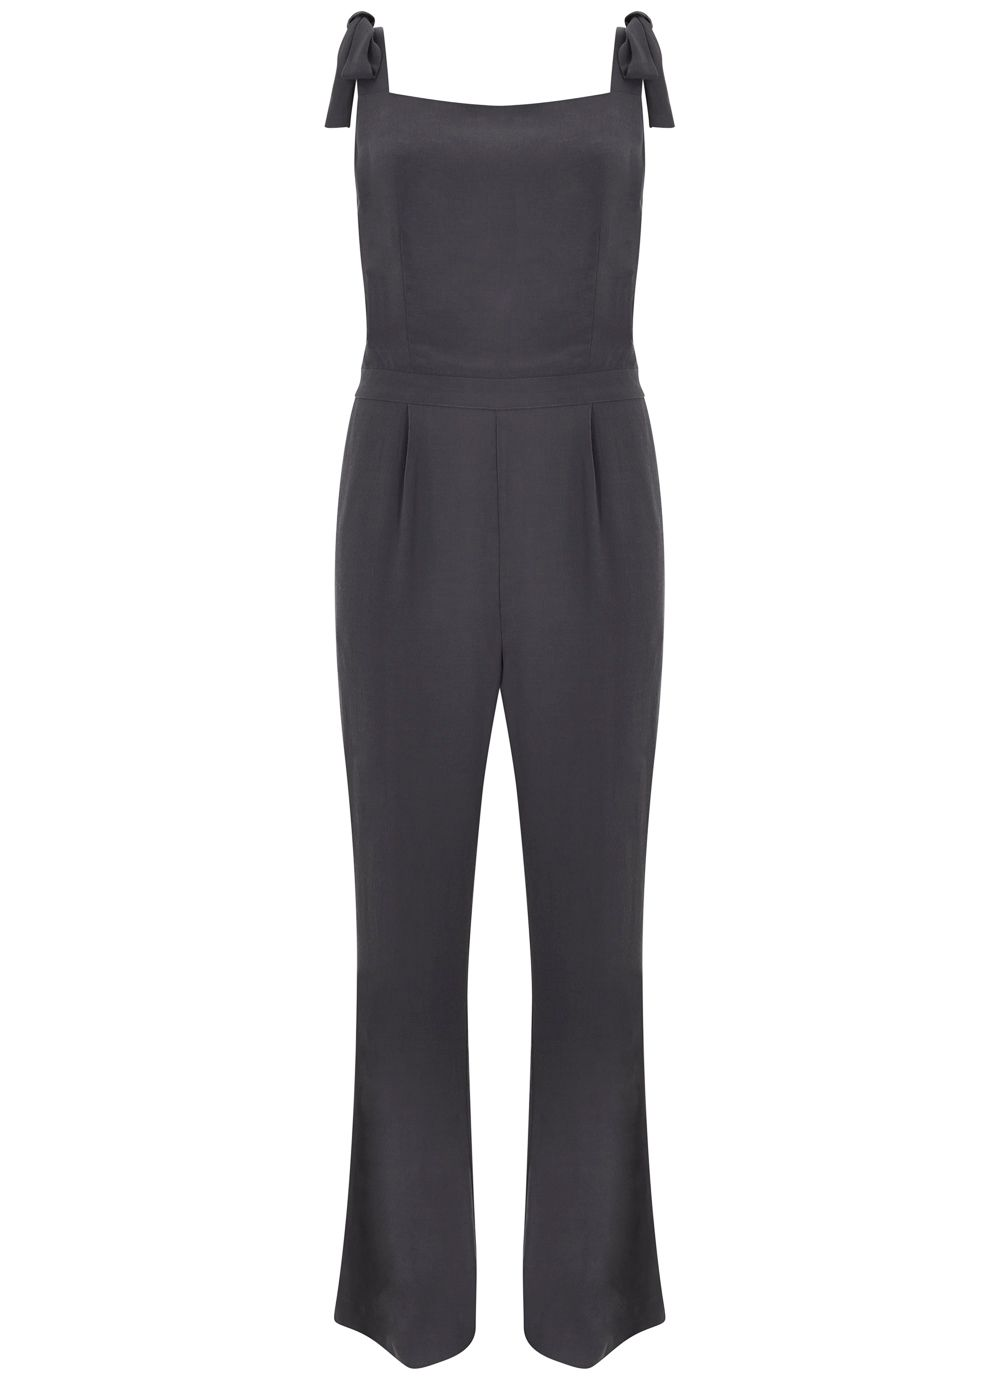 Vintage Overalls 1910s -1950s Pictures and History Mint Velvet Smoke Wide Leg Jumpsuit £39.00 AT vintagedancer.com